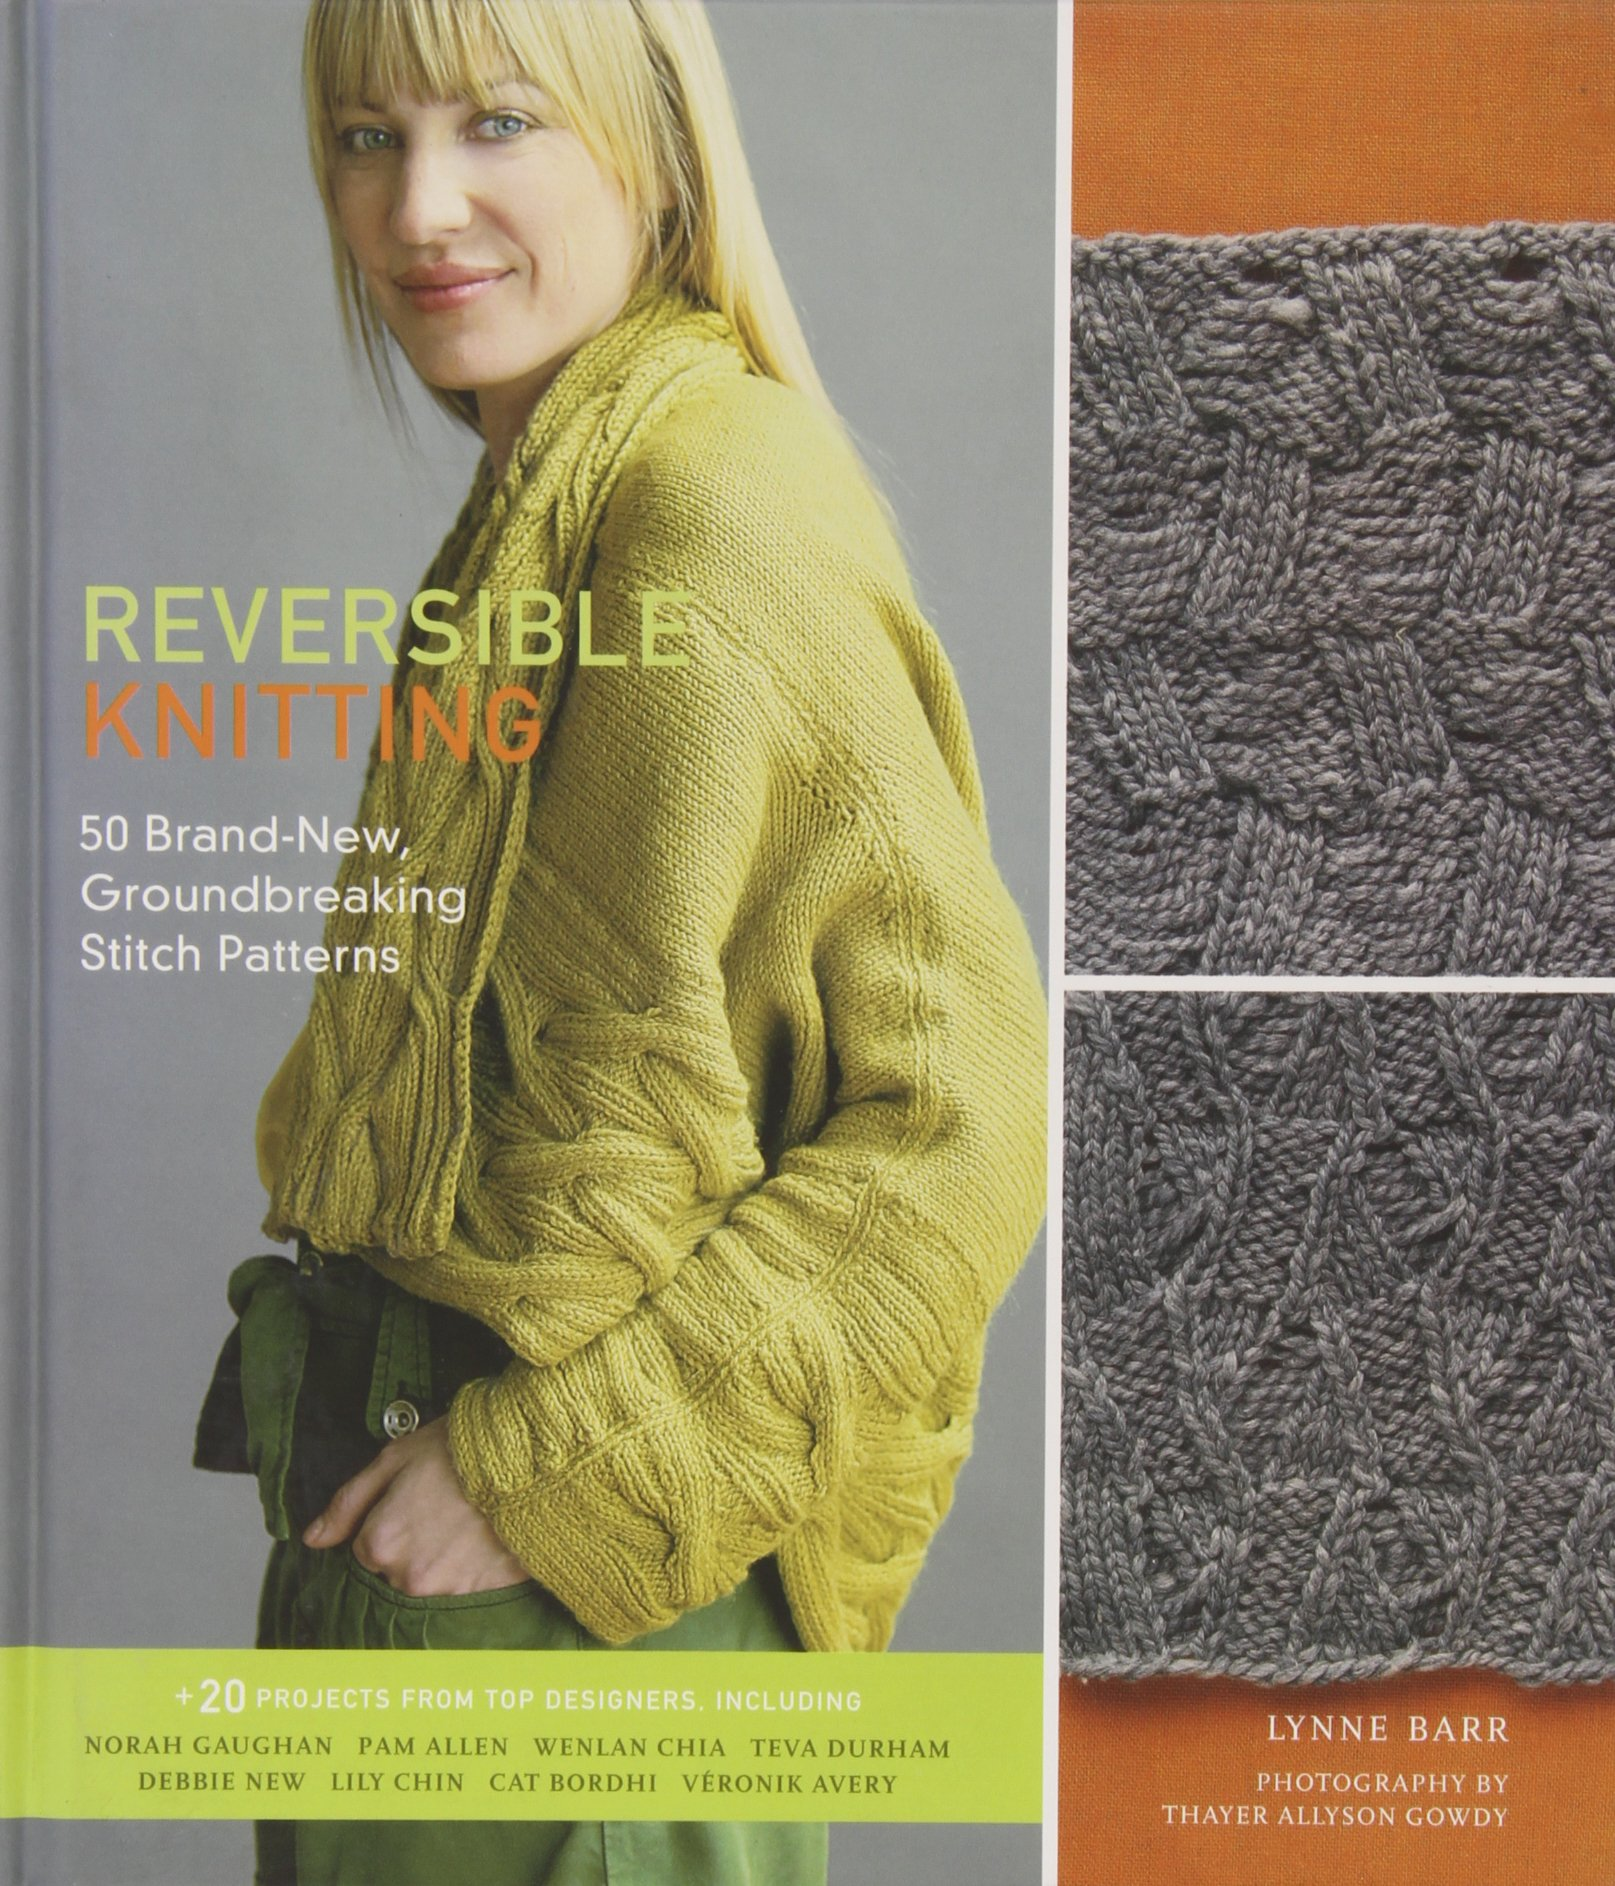 Reversible Knitting: 50 Brand-New, Groundbreaking Stitch Patterns Hardcover – October 1, 2009 Lynne Barr Thayer Allyson Gowdy Stewart Tabori and Chang